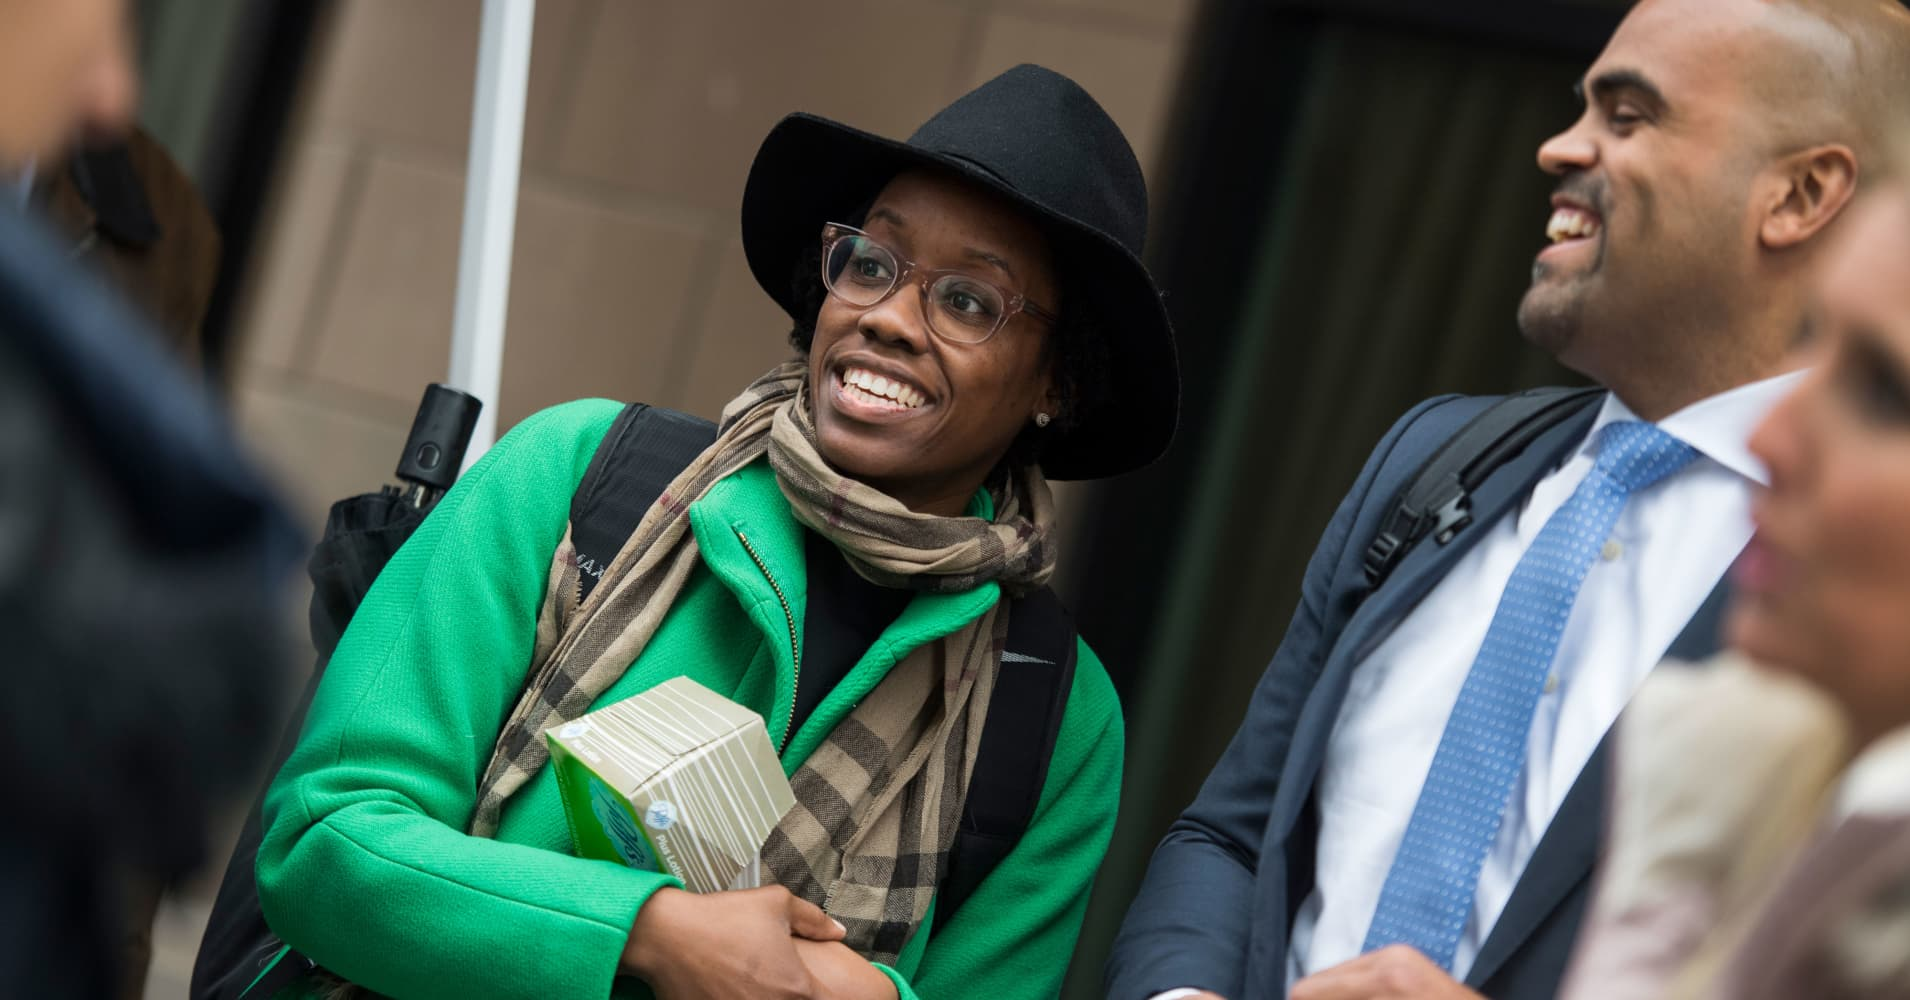 Members-elect Lauren Underwood, D-Ill., and Colin Allred, D-Texas, arrive for New Member Orientation at the Courtyard Marriott in SE, on November 13, 2018.